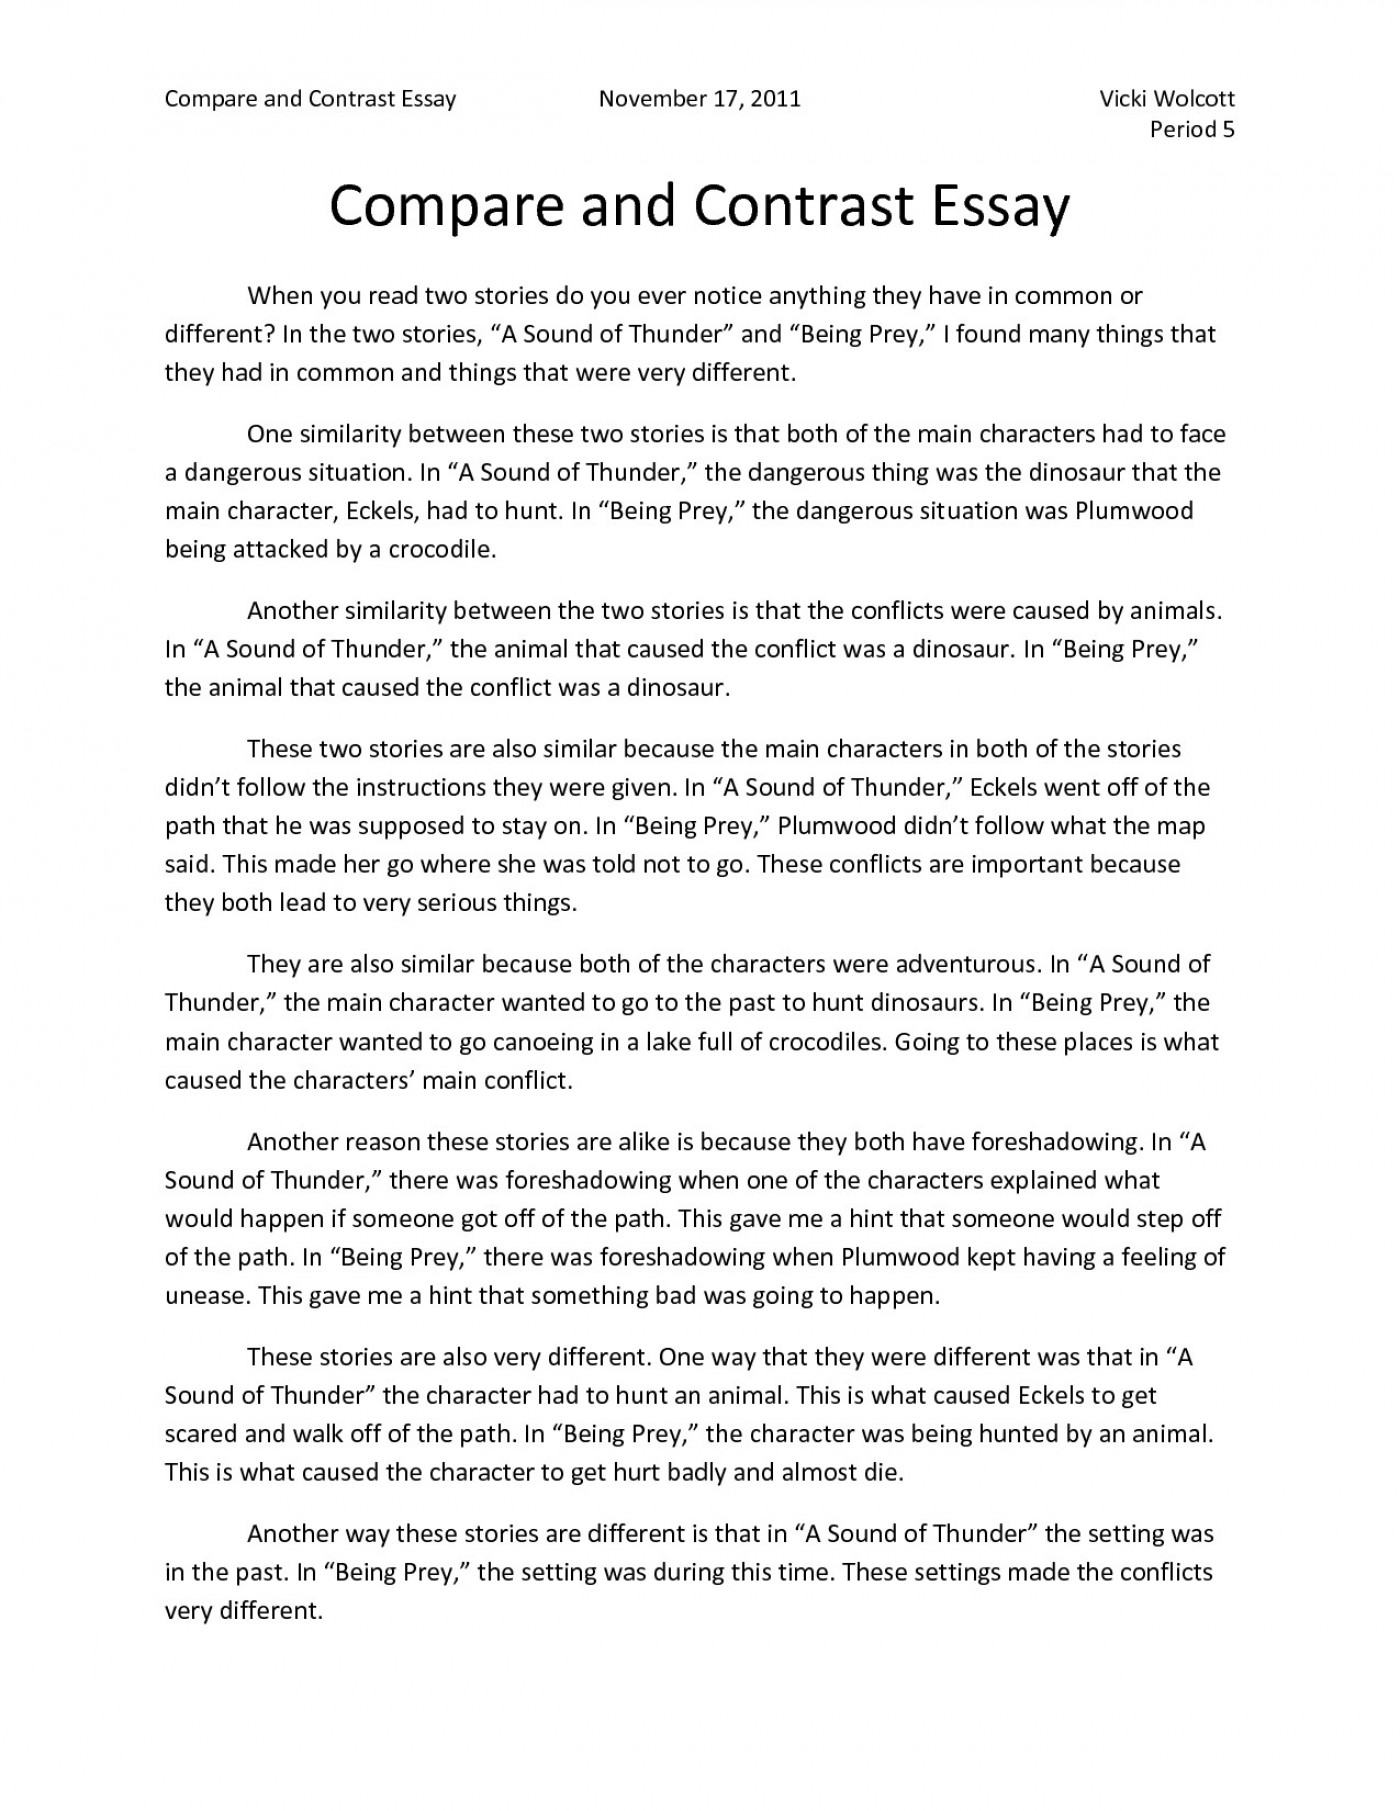 006 Comparing And Contrasting Essay Example Satire Examples Of Comparison Contrast Essays Com How To Write Outstanding A Compare On Two Poems An Introduction Conclusion For Middle School 1400